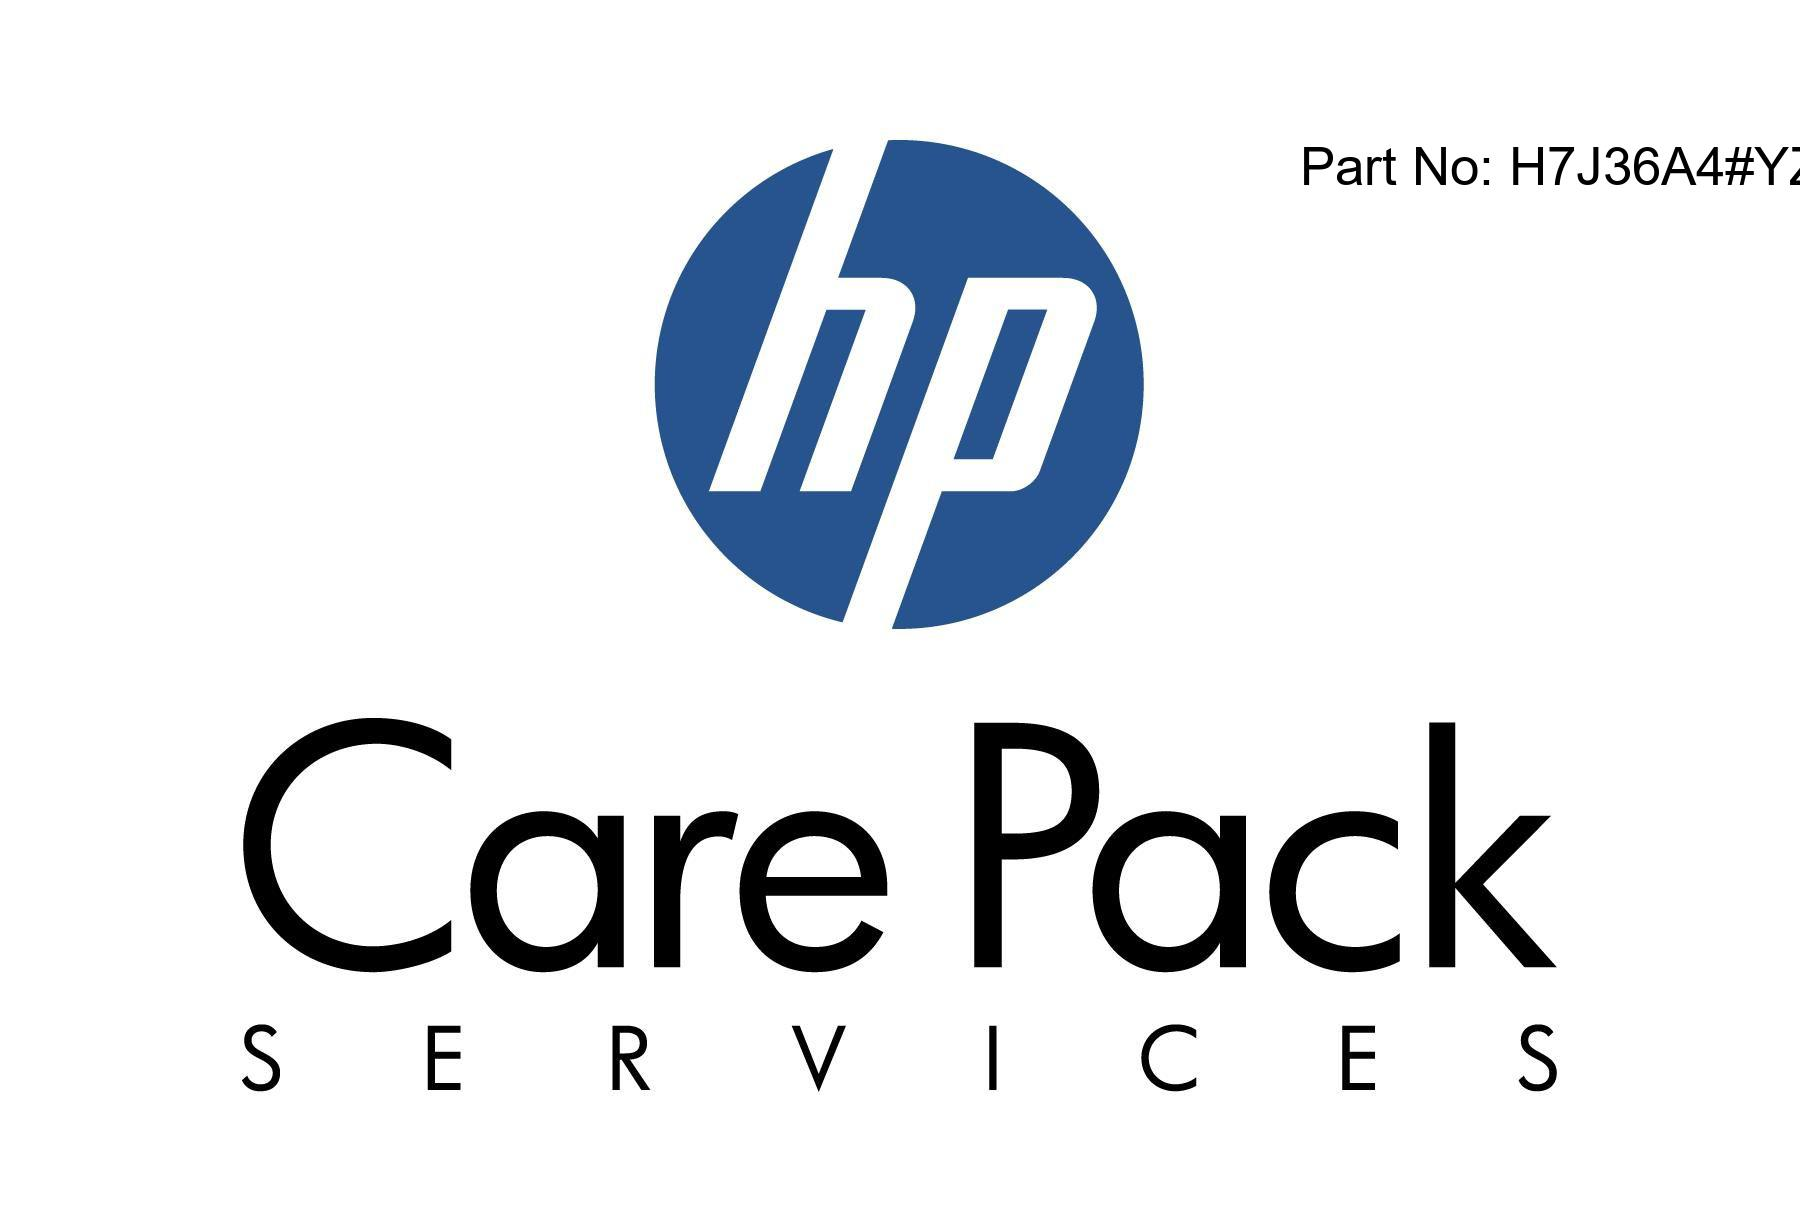 Foundation Care Call-To-Repair Service - Technical support - for HPE 3PAR 8200 Remote Copy - 8 drives - phone consulting - 4 years - 24x7 - response time: 2 h